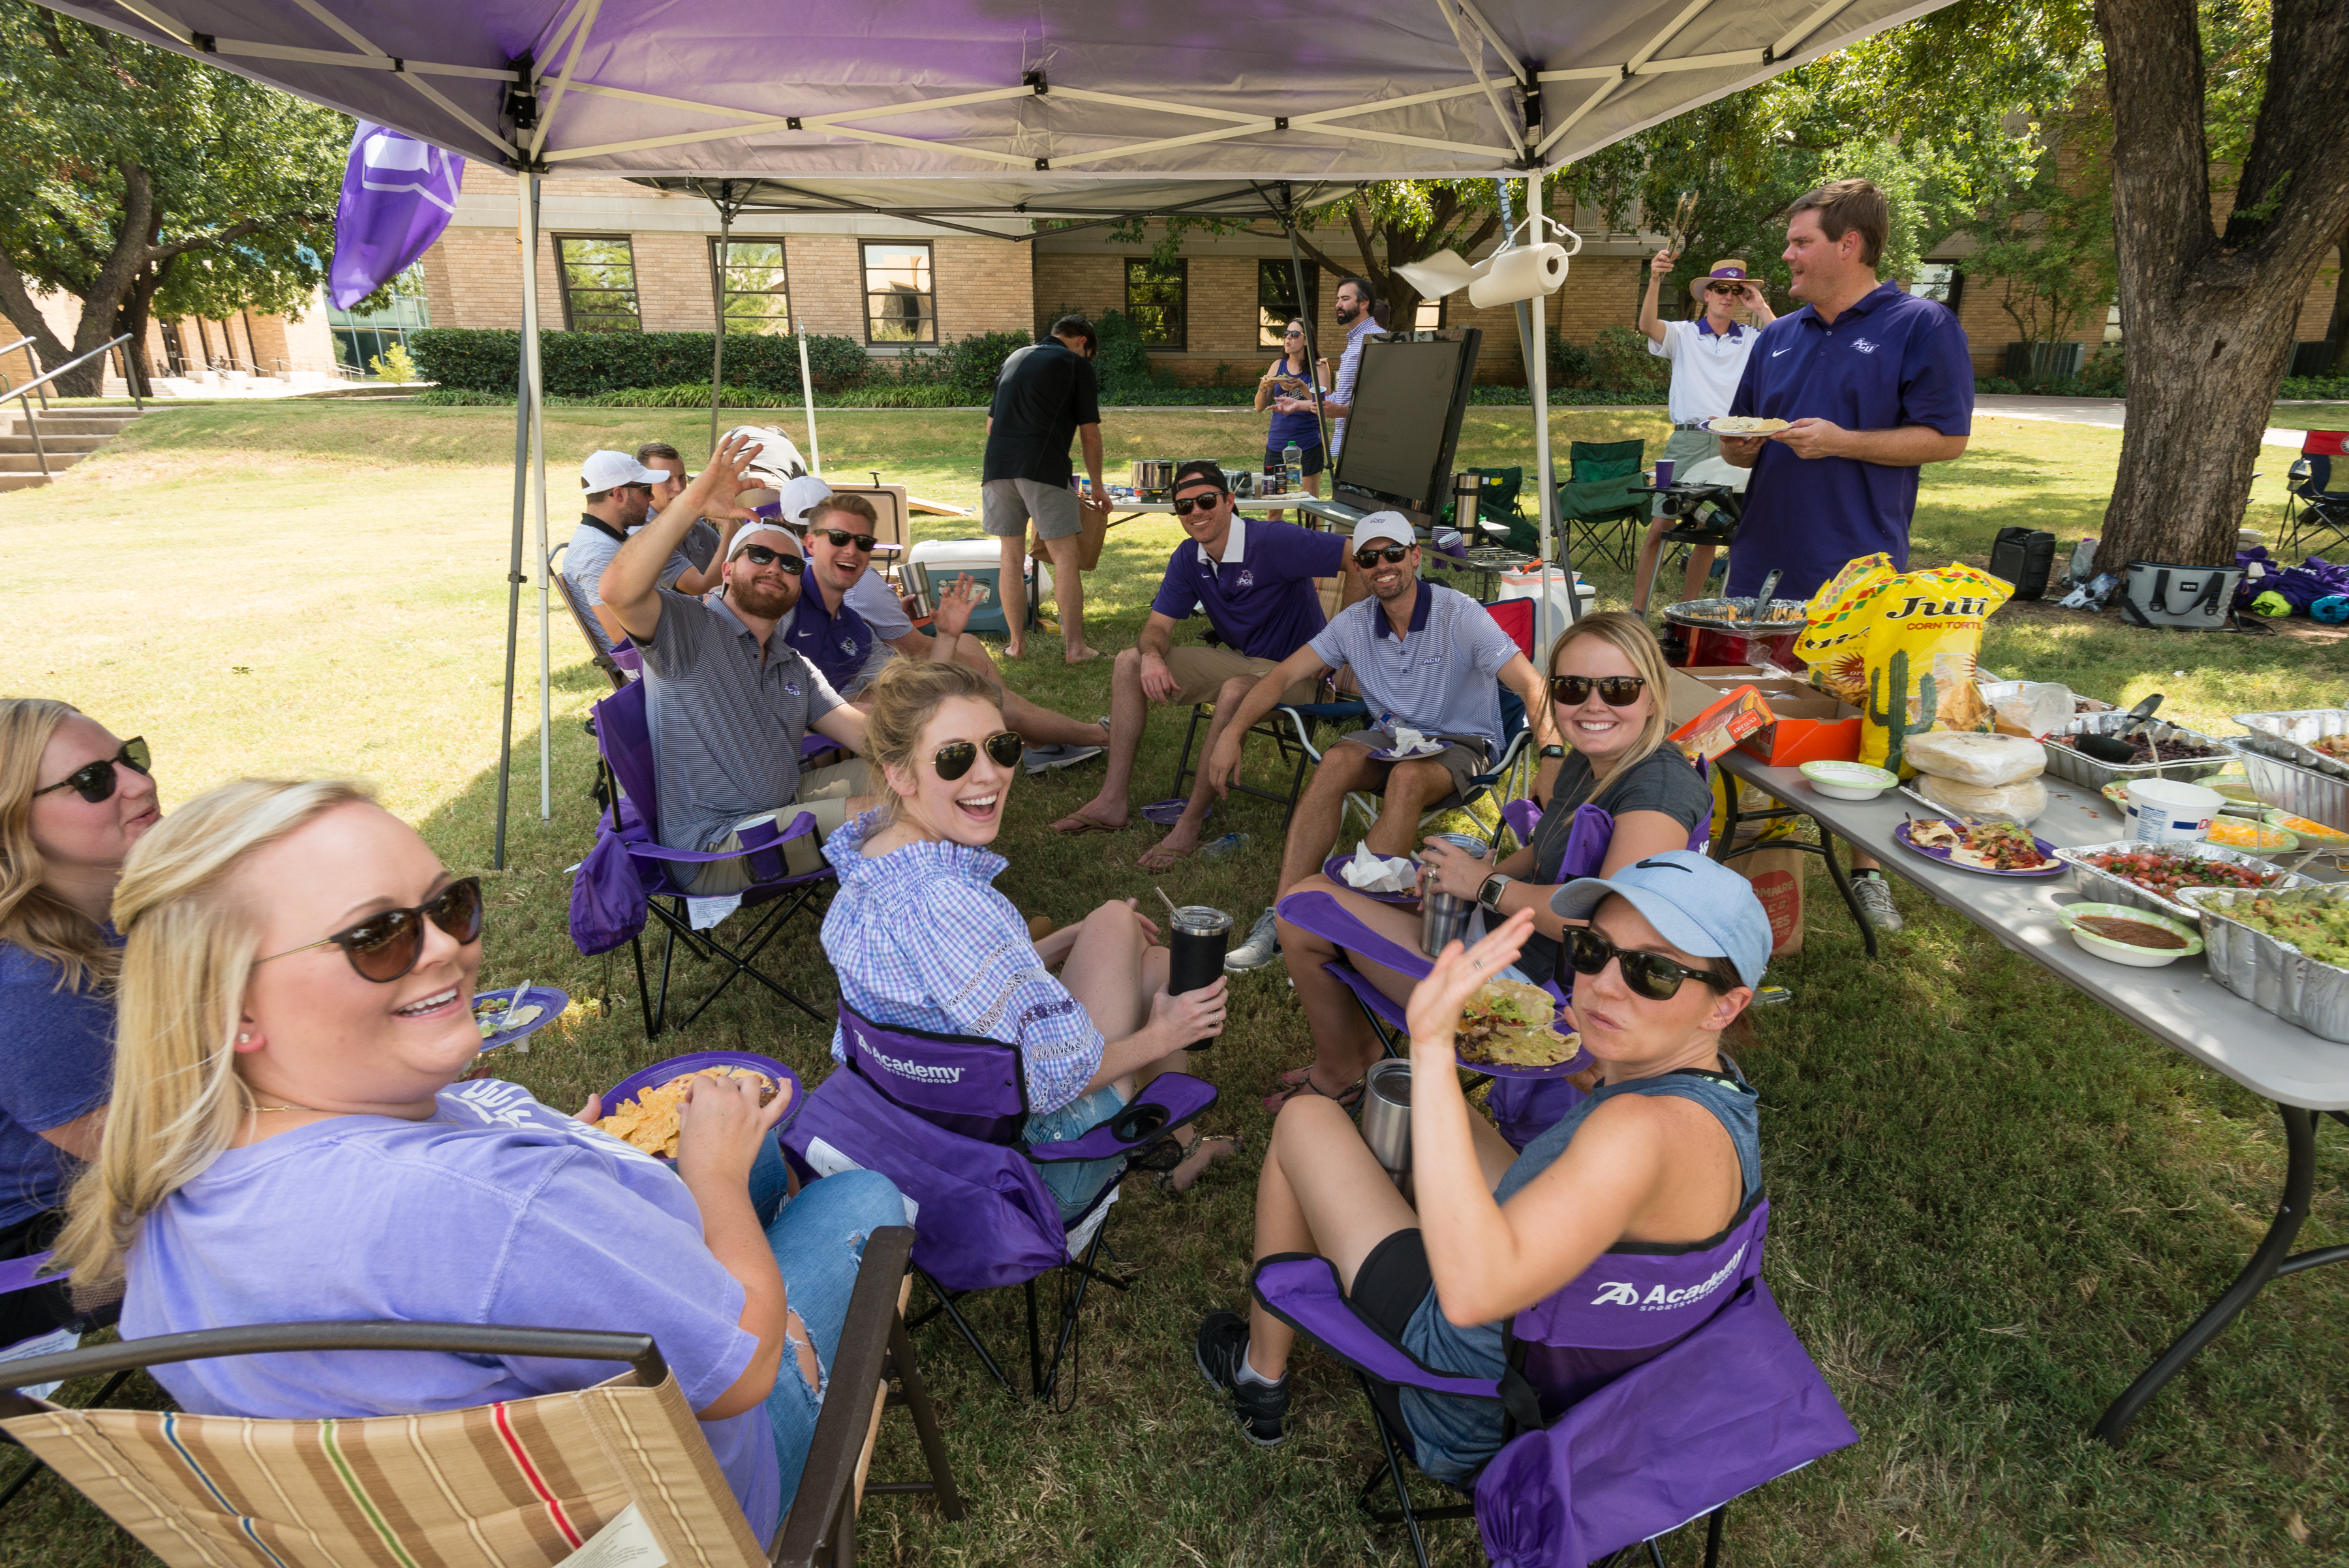 Garrett Sublette ('03), far right, and friends enjoy Wildcat Country Tailgating and Sublette's good eats on Opening Weekend of Anthony Field at Wildcat Stadium on Saturday, Sept. 16, 2017.